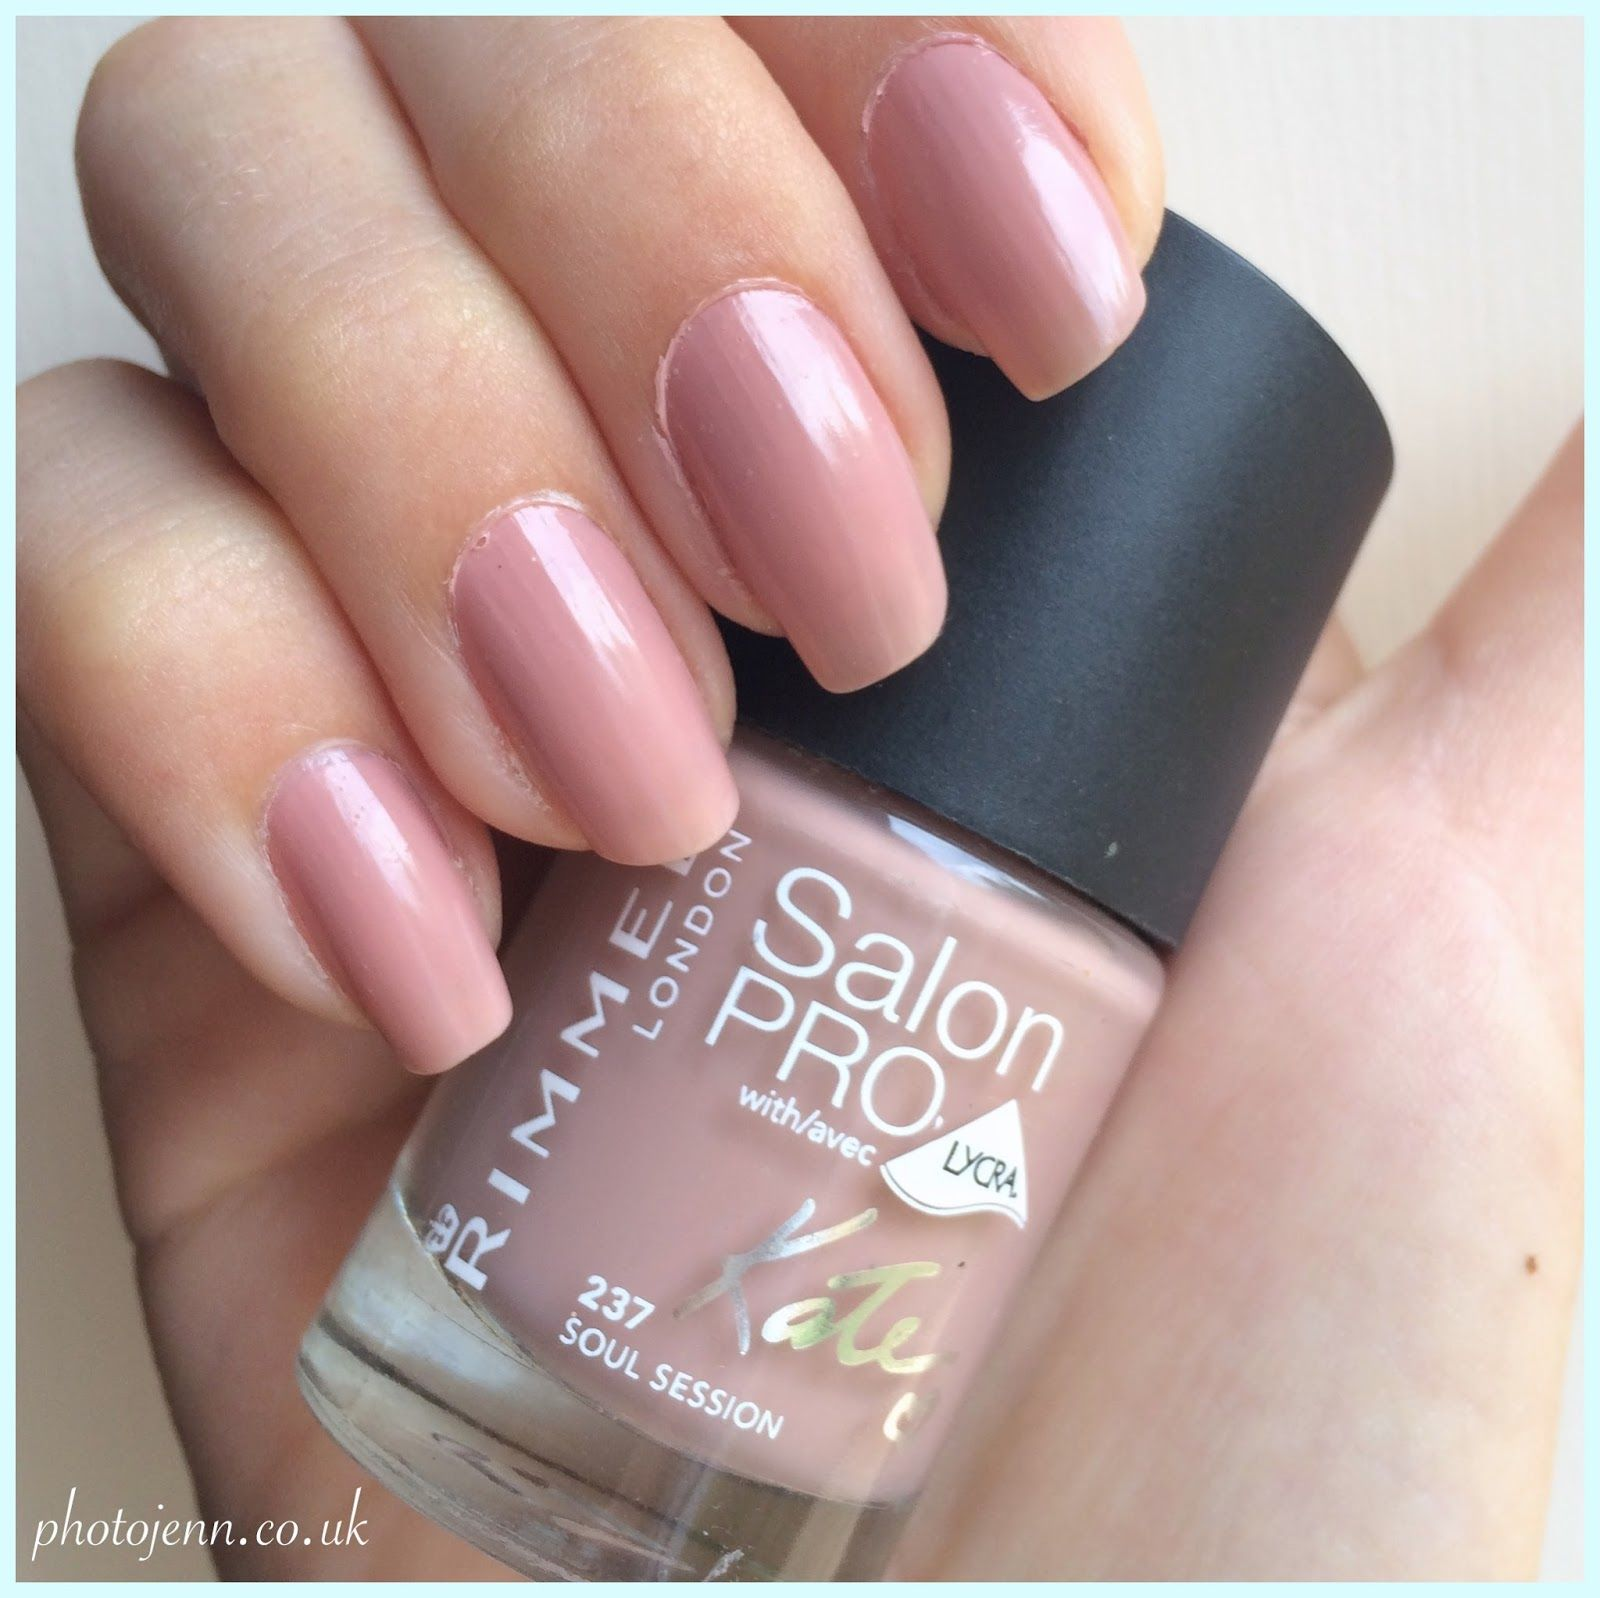 Rimmel-Kate-Moss-Nude-collection-salon-pro-nail-polish